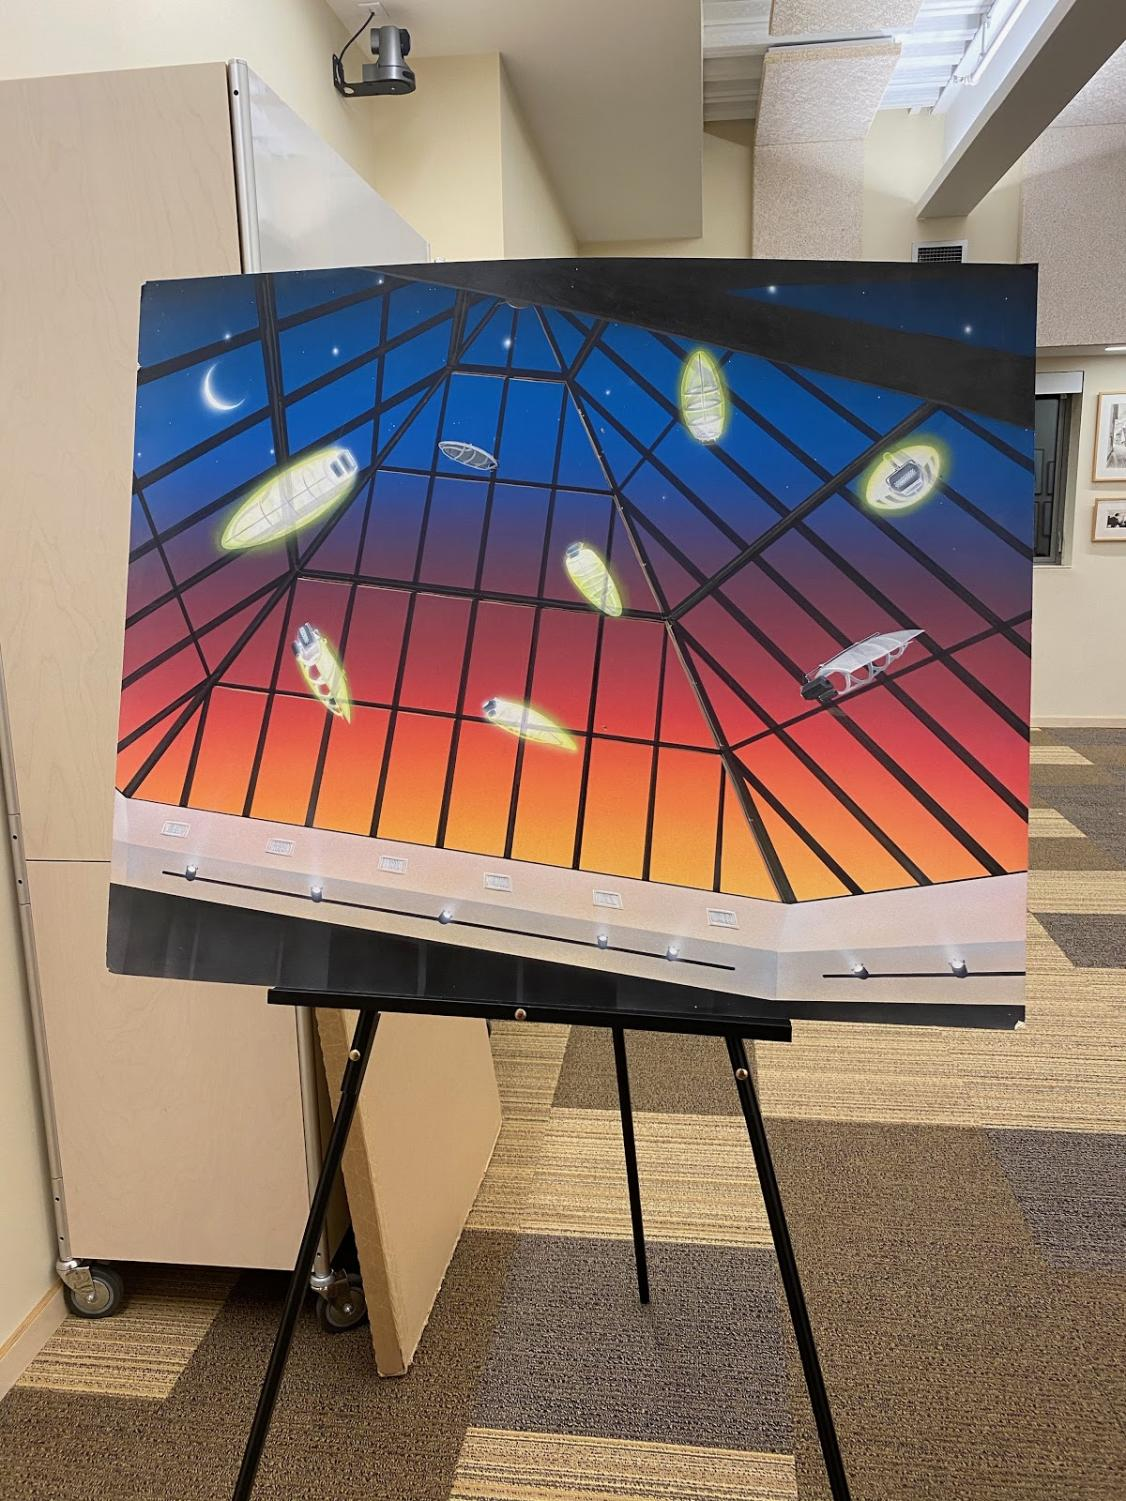 One of Mark Yurkiw's pieces at his event at the Westport Library on Jan. 6.